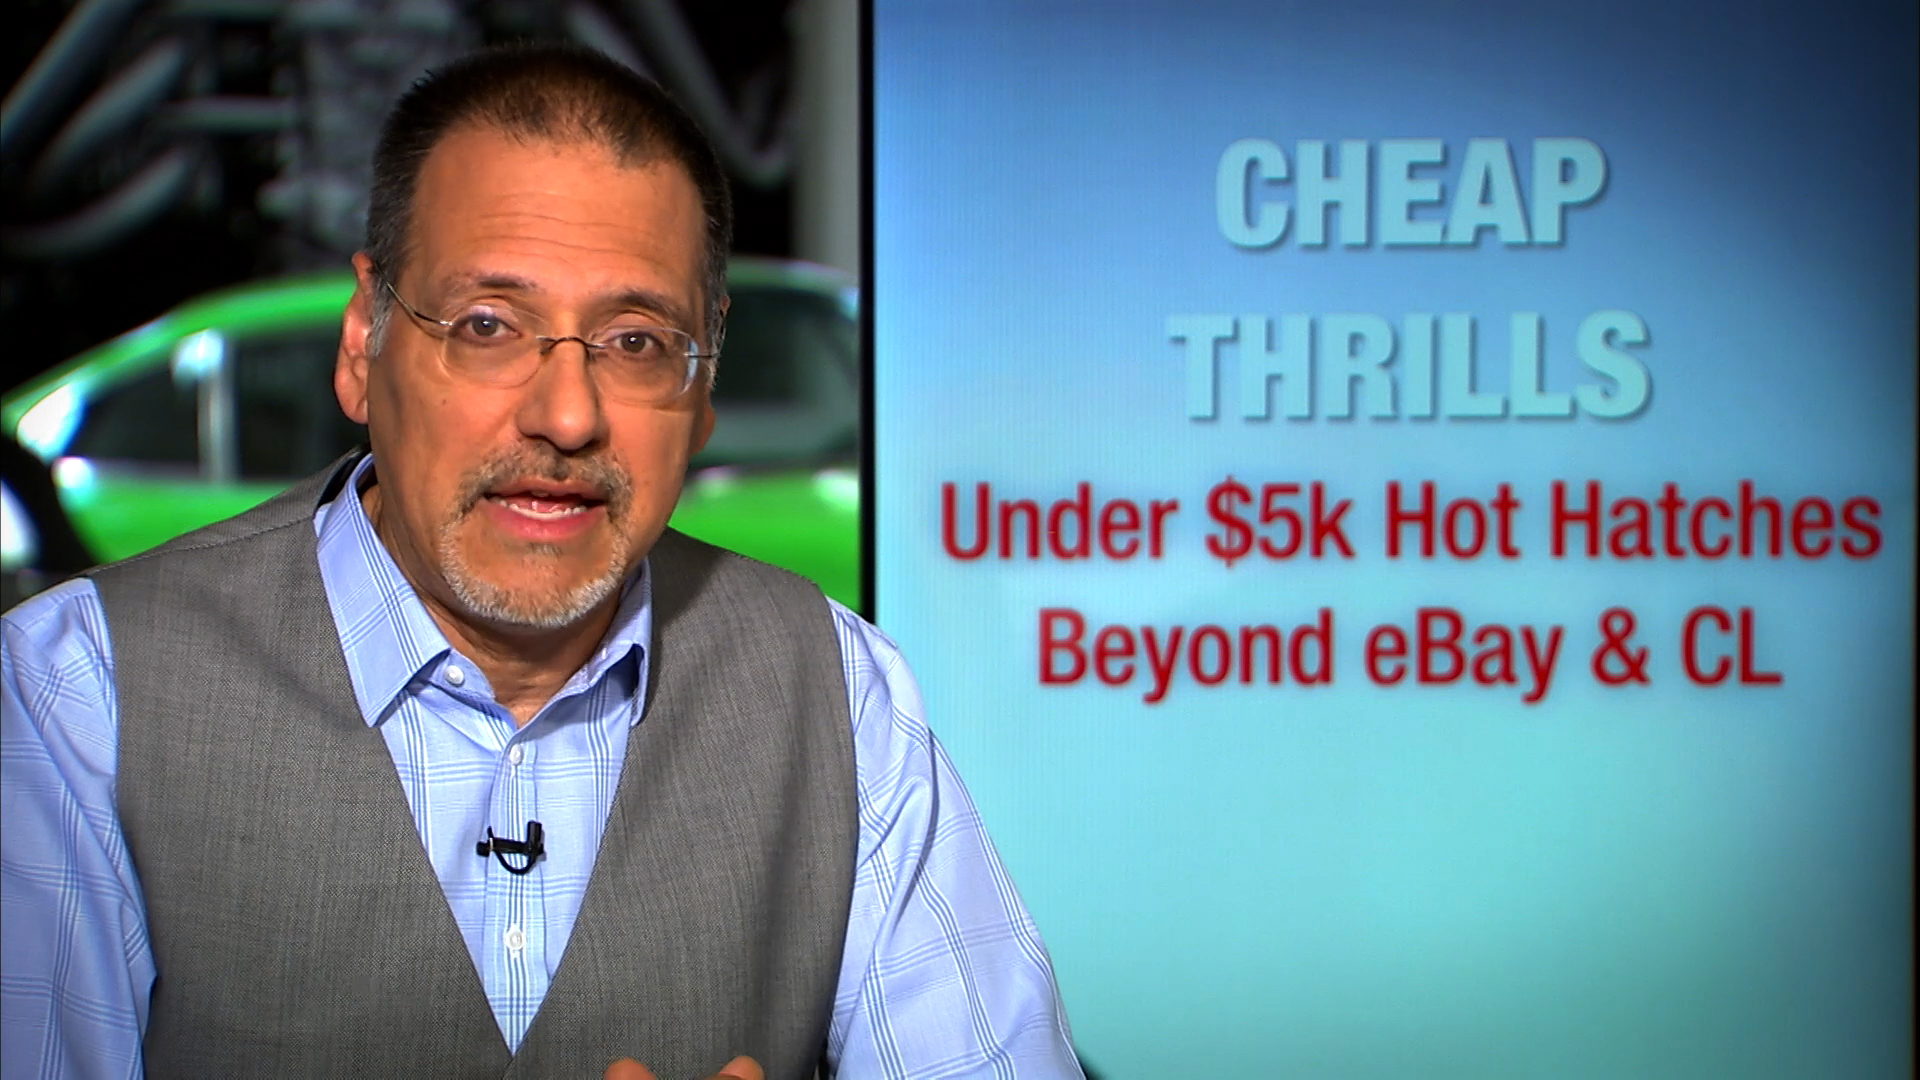 Video: Your emails: Tips on finding a car under $5,000